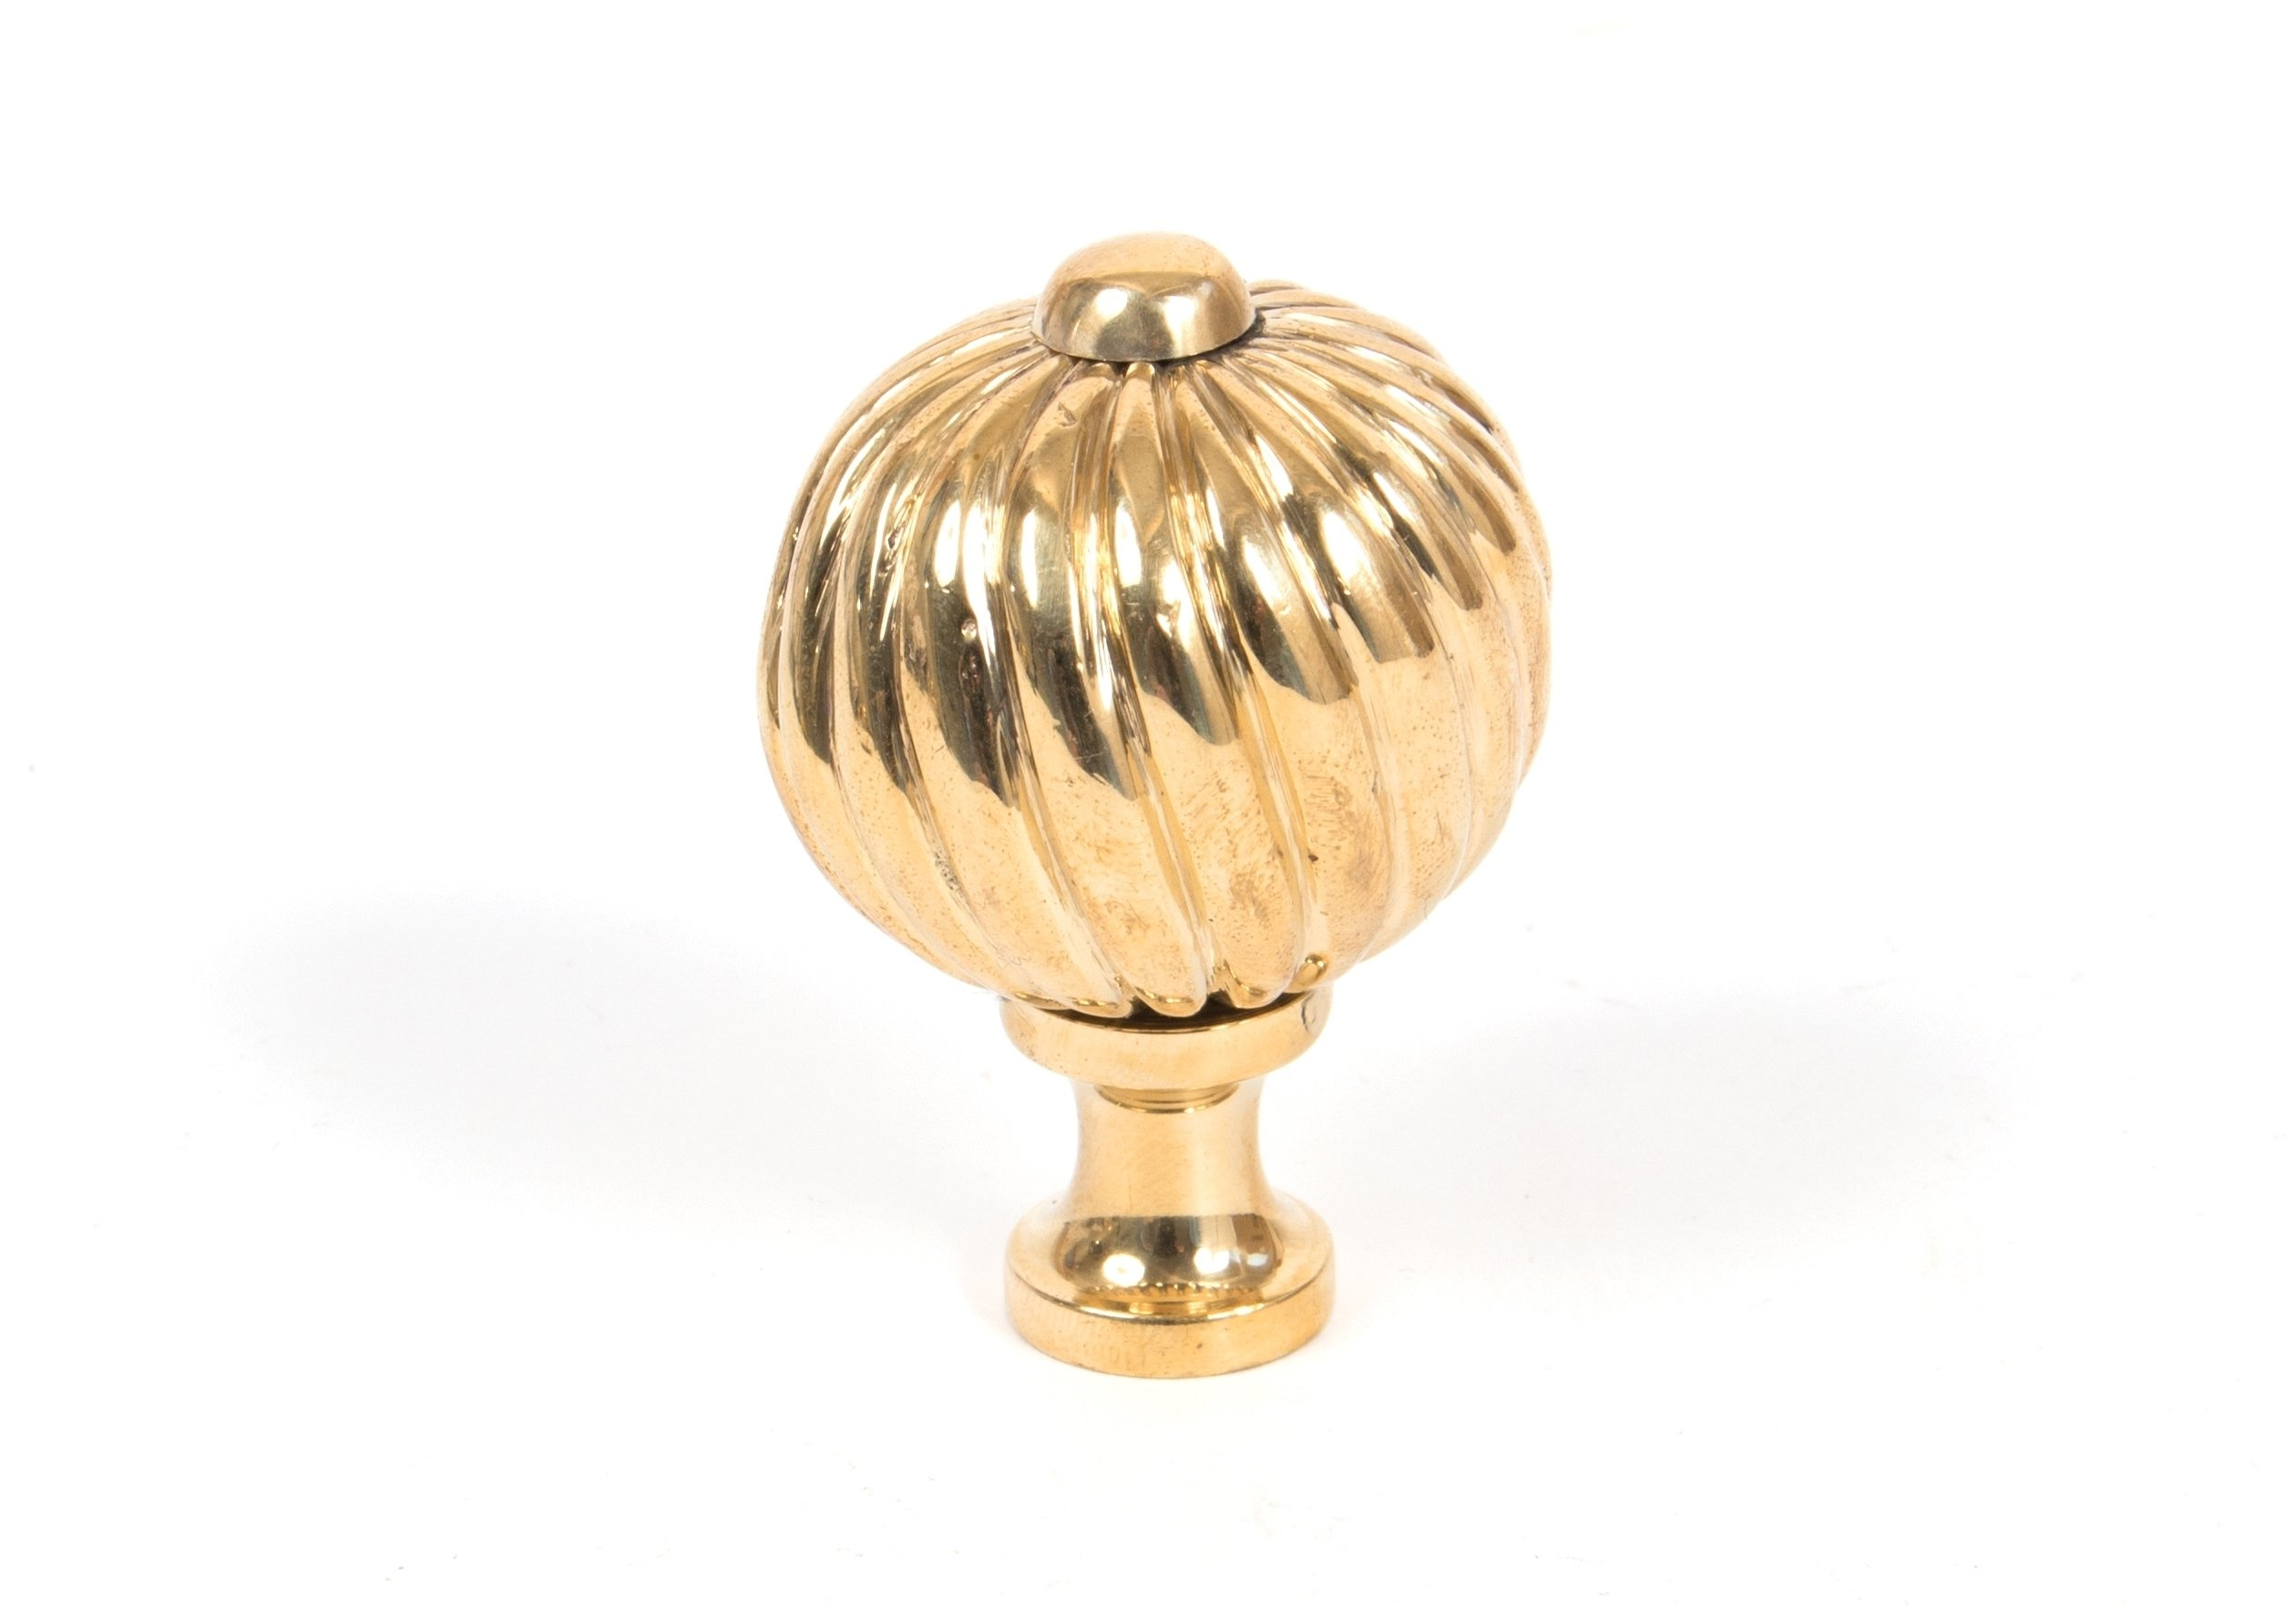 Polished Brass Spiral Cabinet Knob - Medium